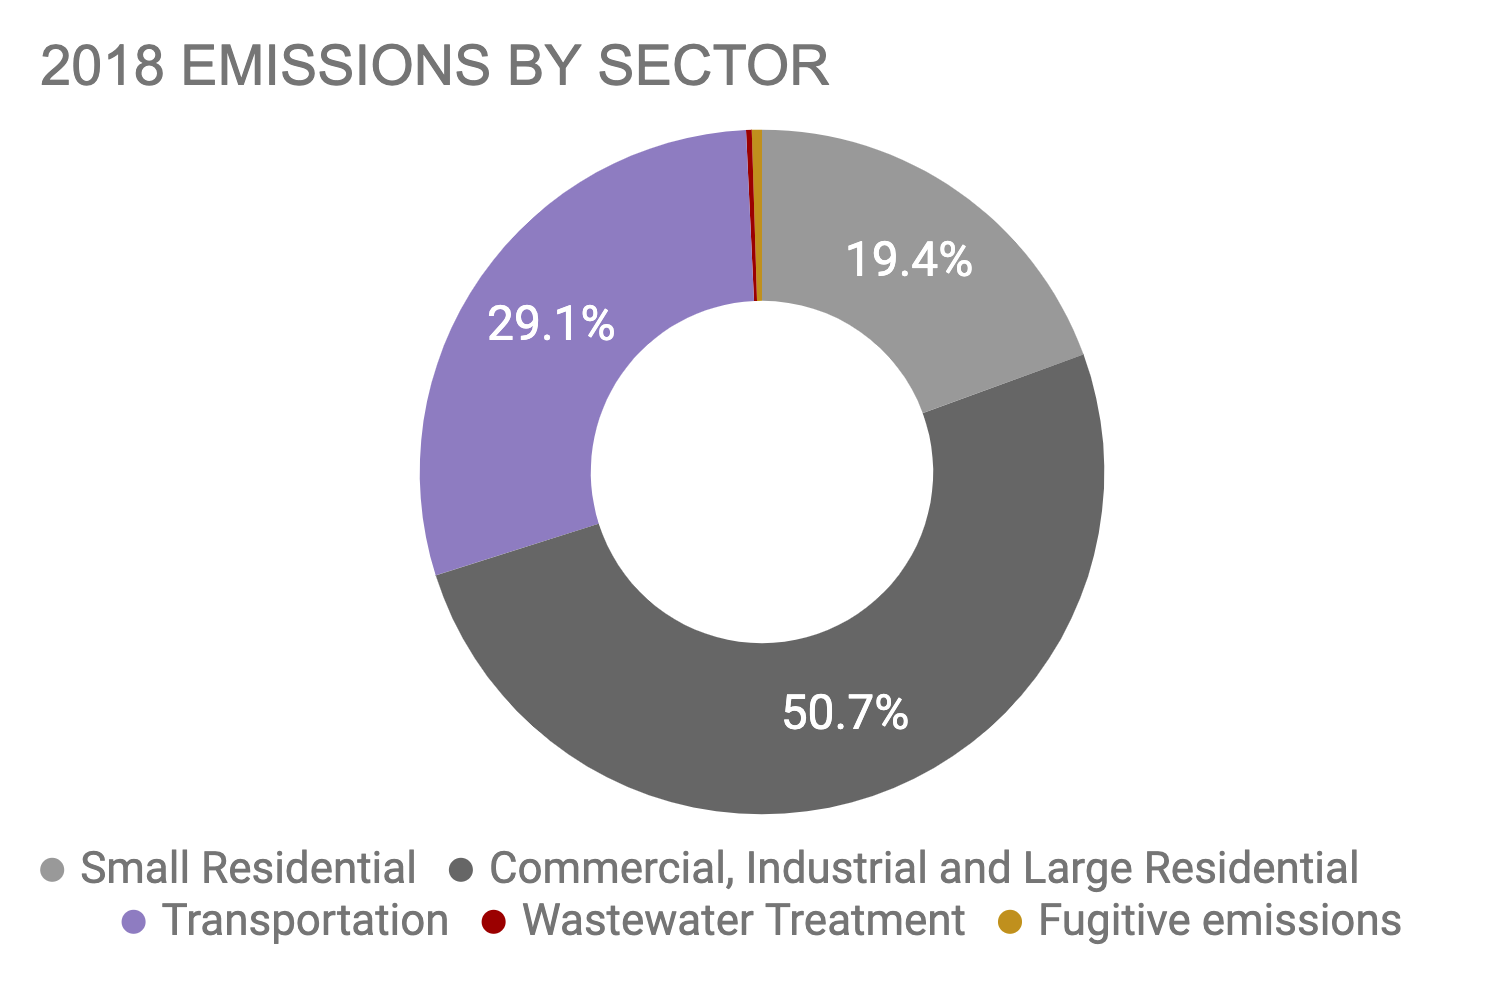 Boston 2018 Emissions by Sector